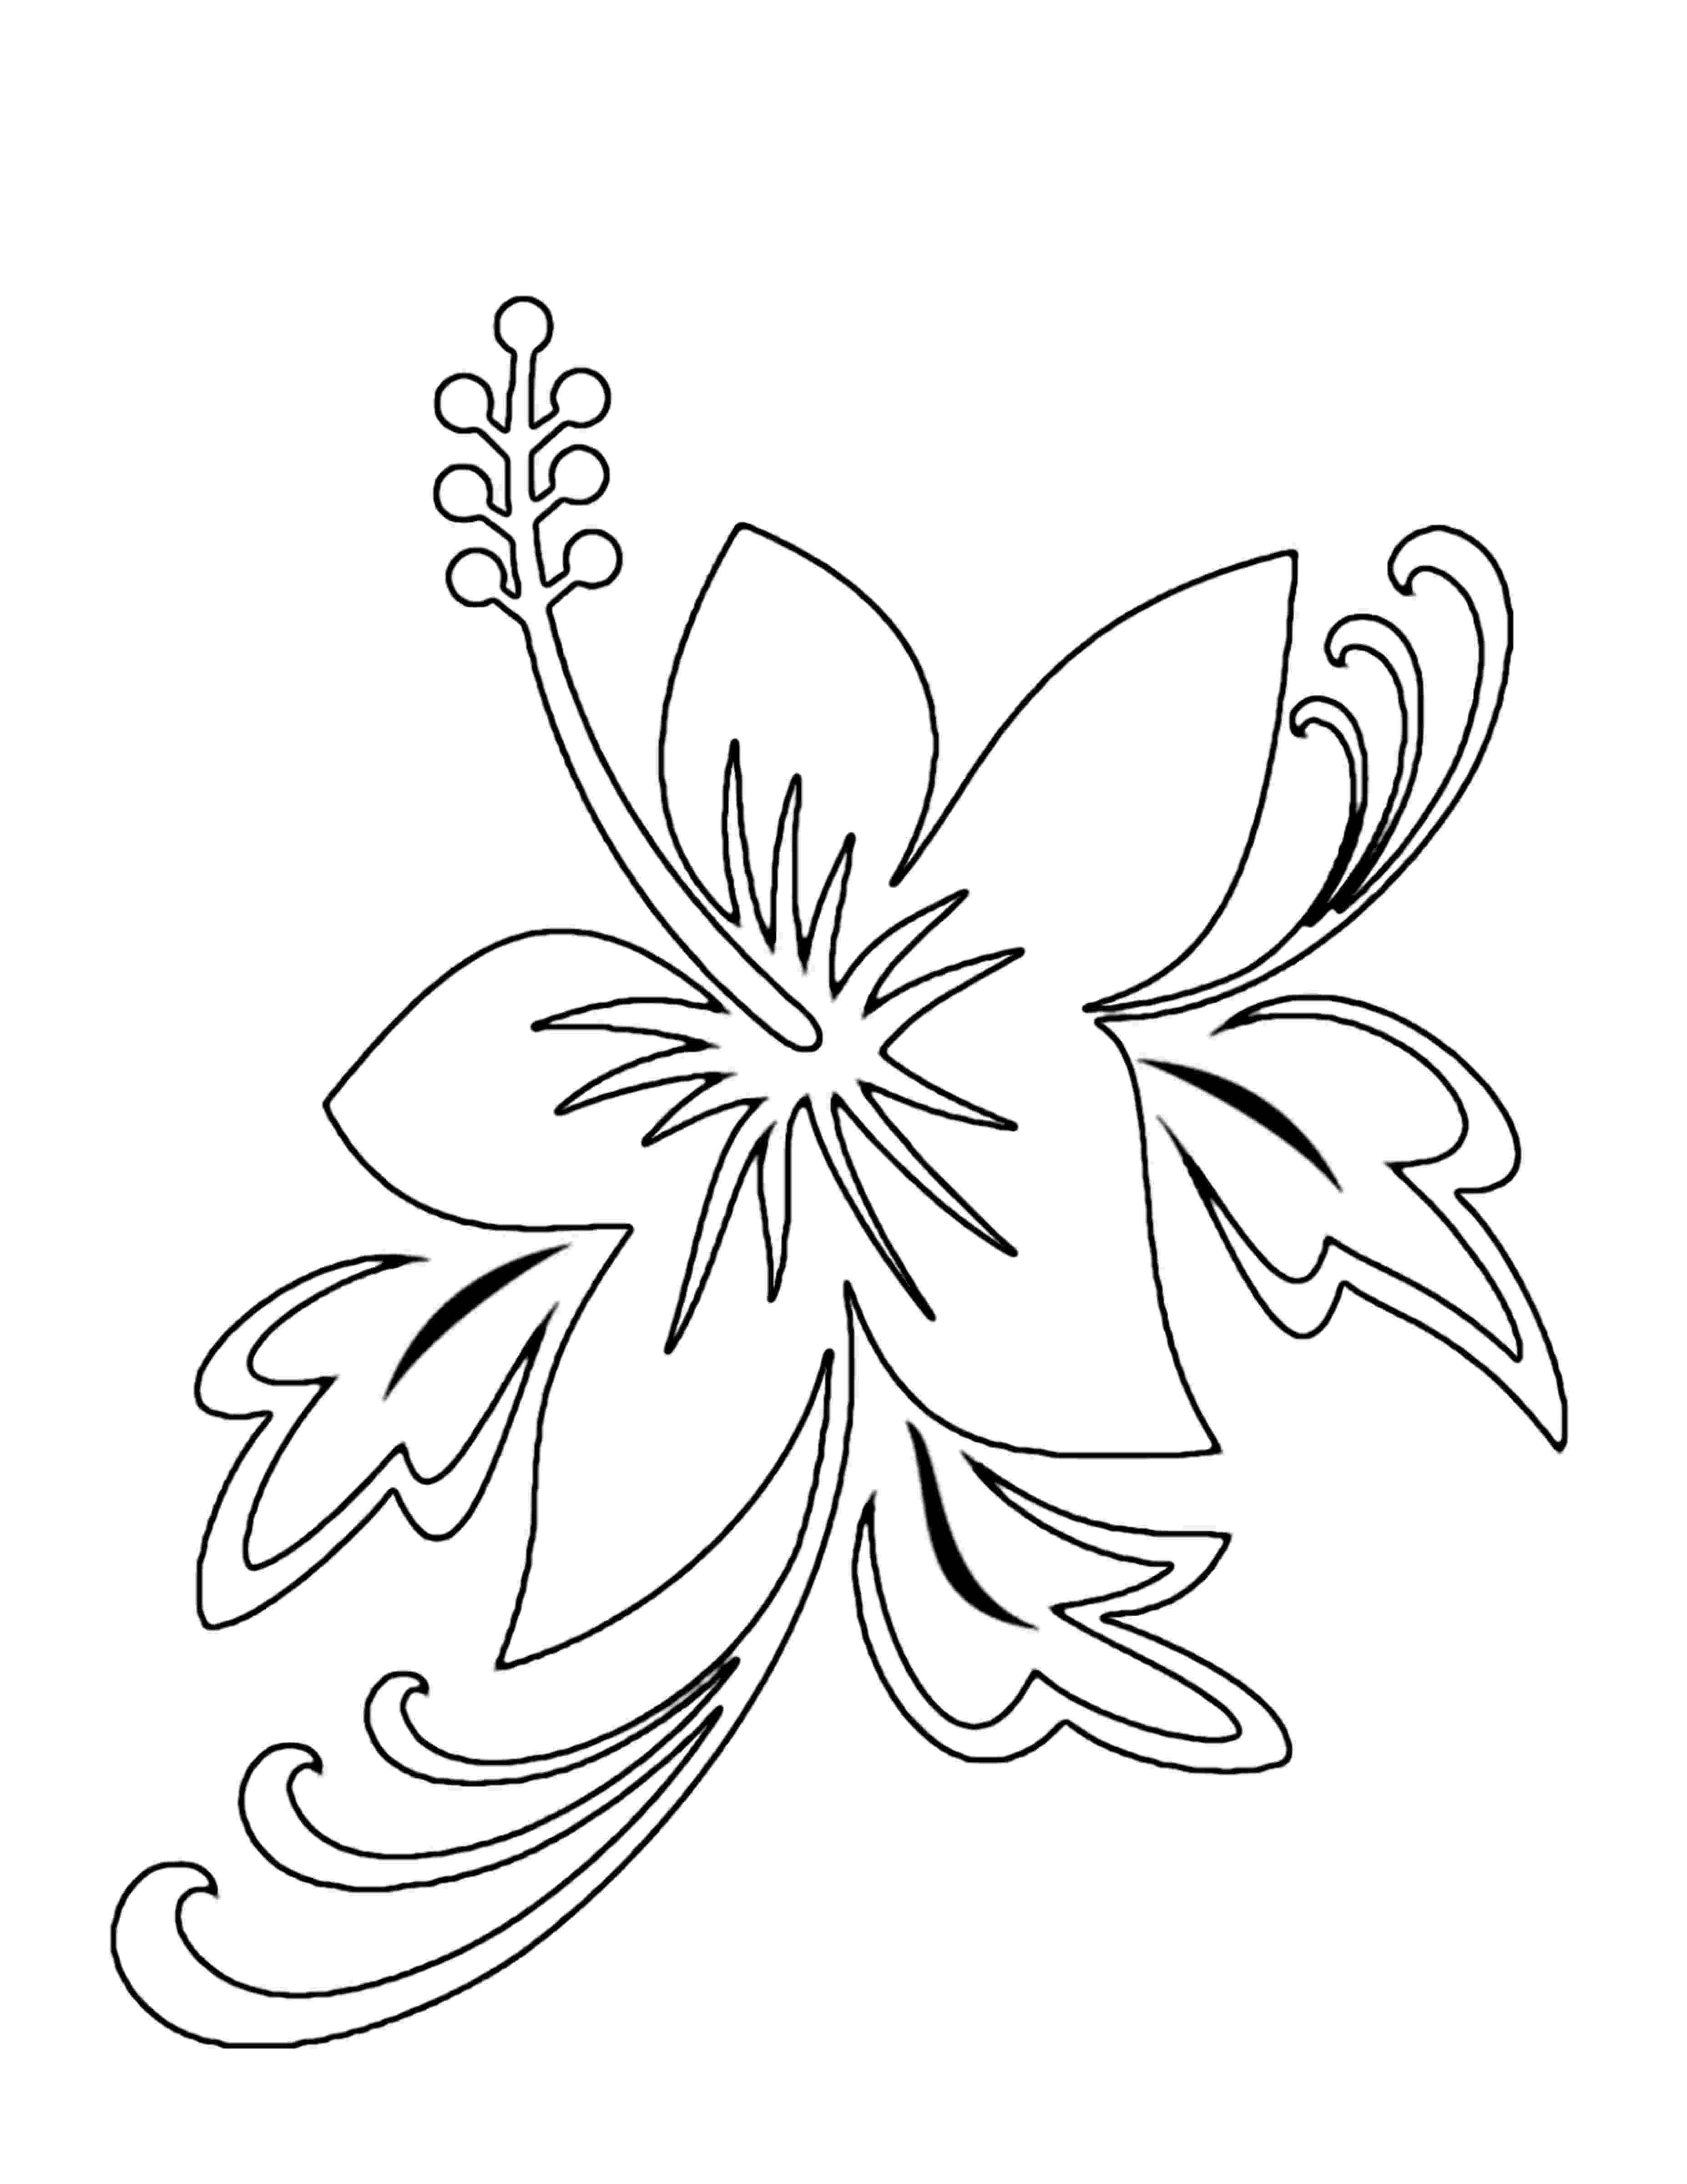 flower coloring book flower coloring pages flower coloring book